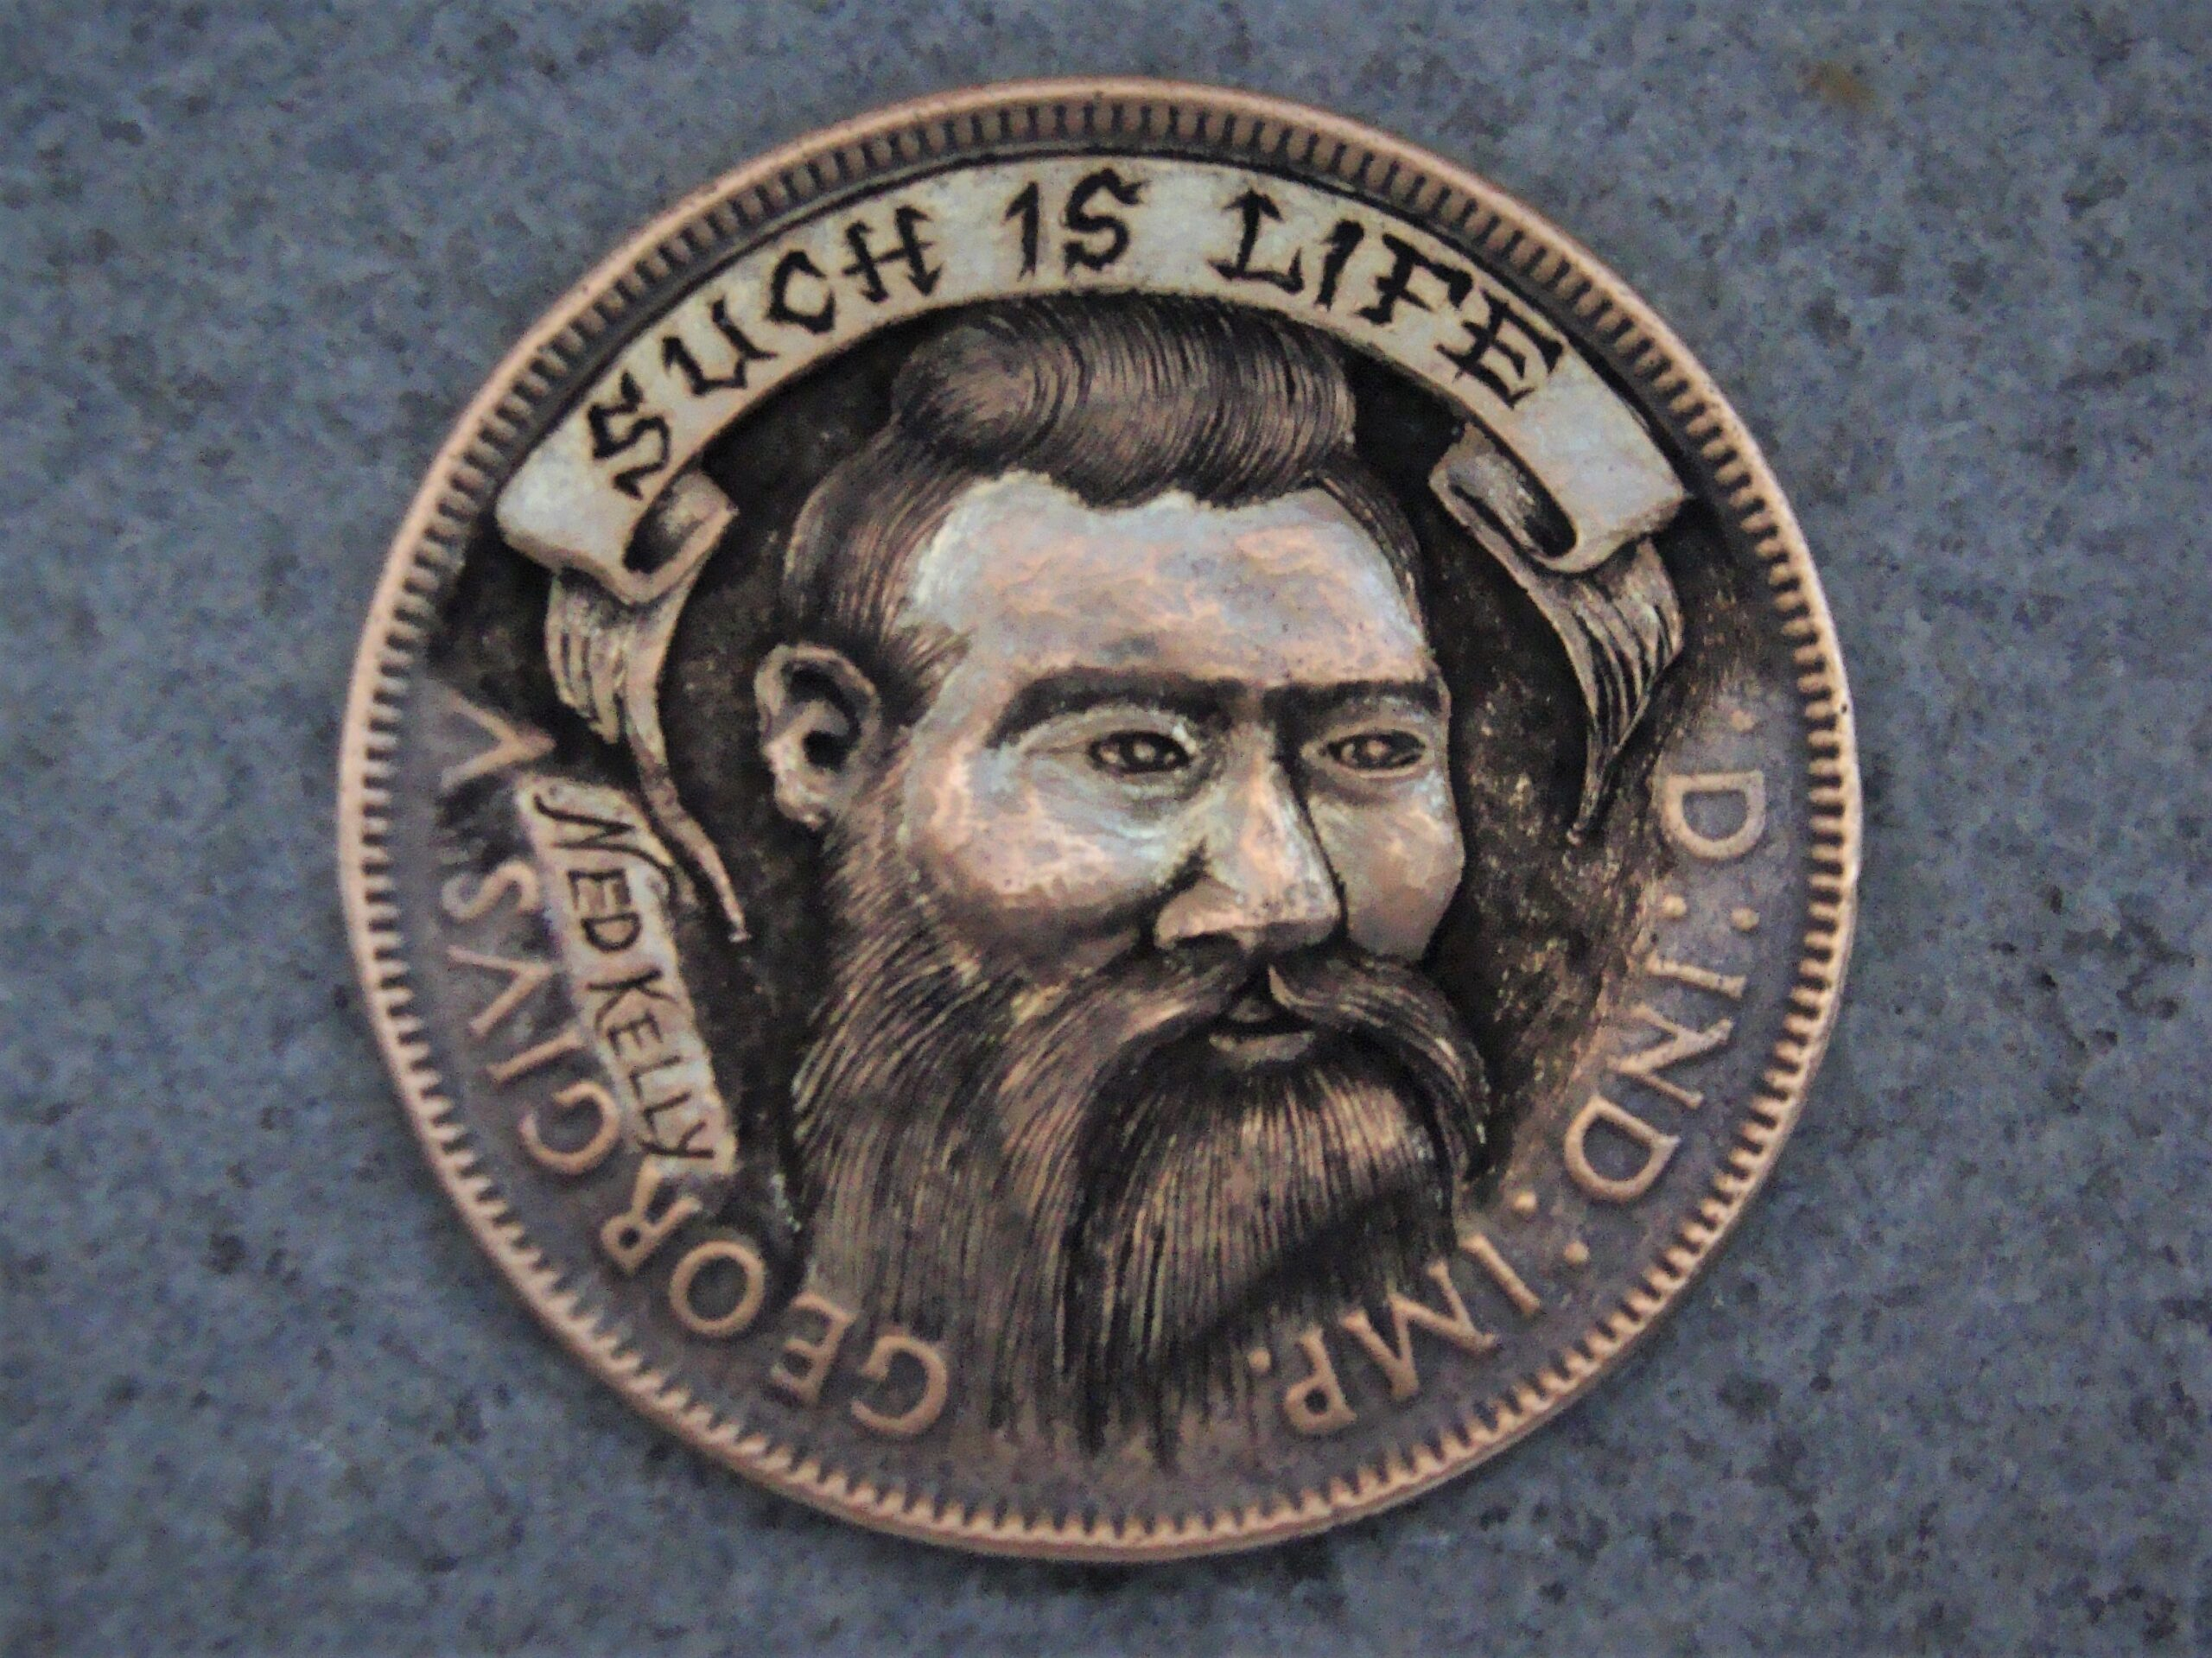 'Such Is Life', Ned Kelly coin carving.